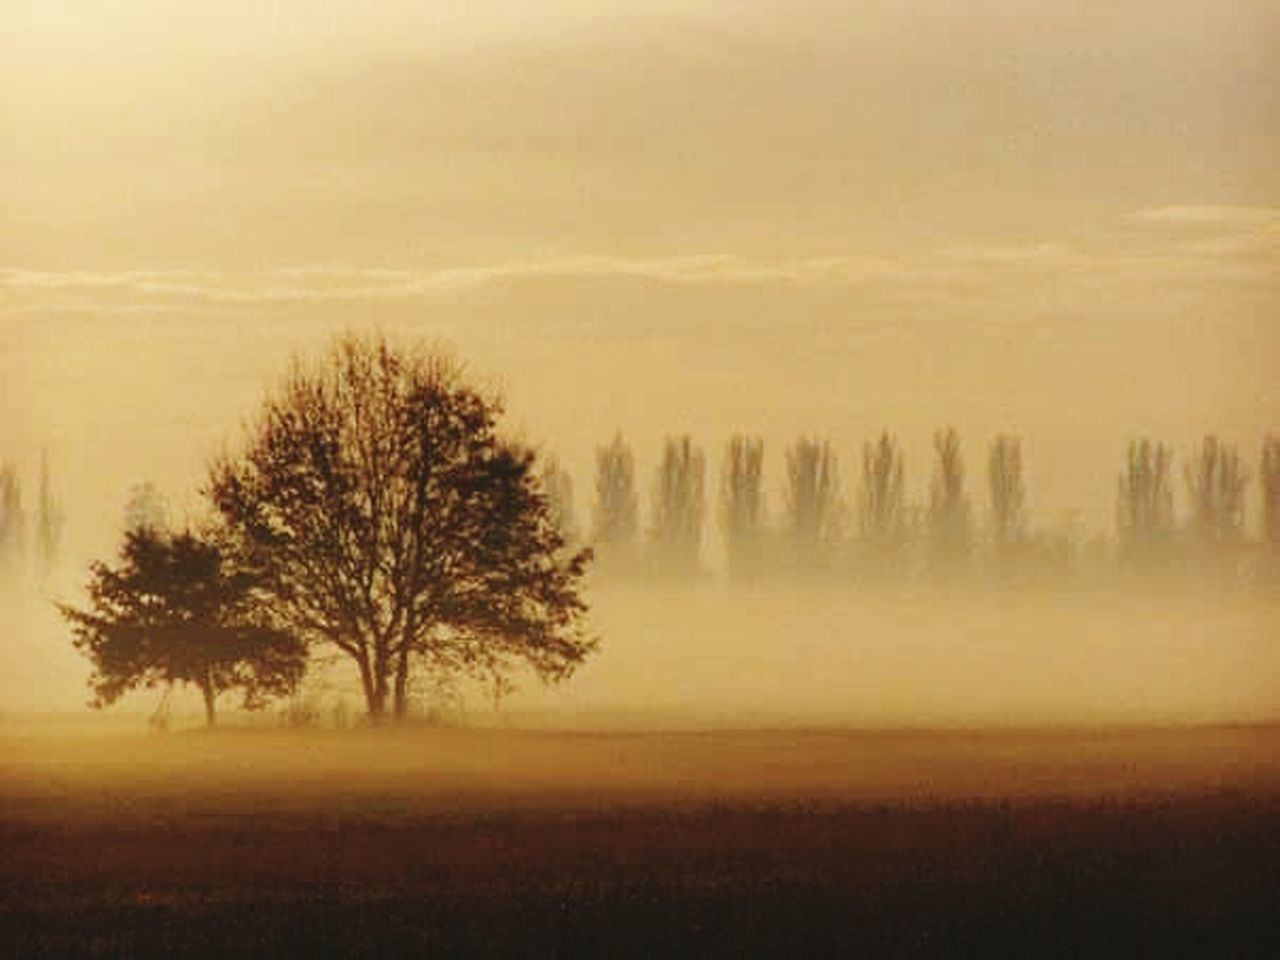 tree, nature, beauty in nature, landscape, tranquil scene, scenics, tranquility, no people, outdoors, forest, sunset, sky, day